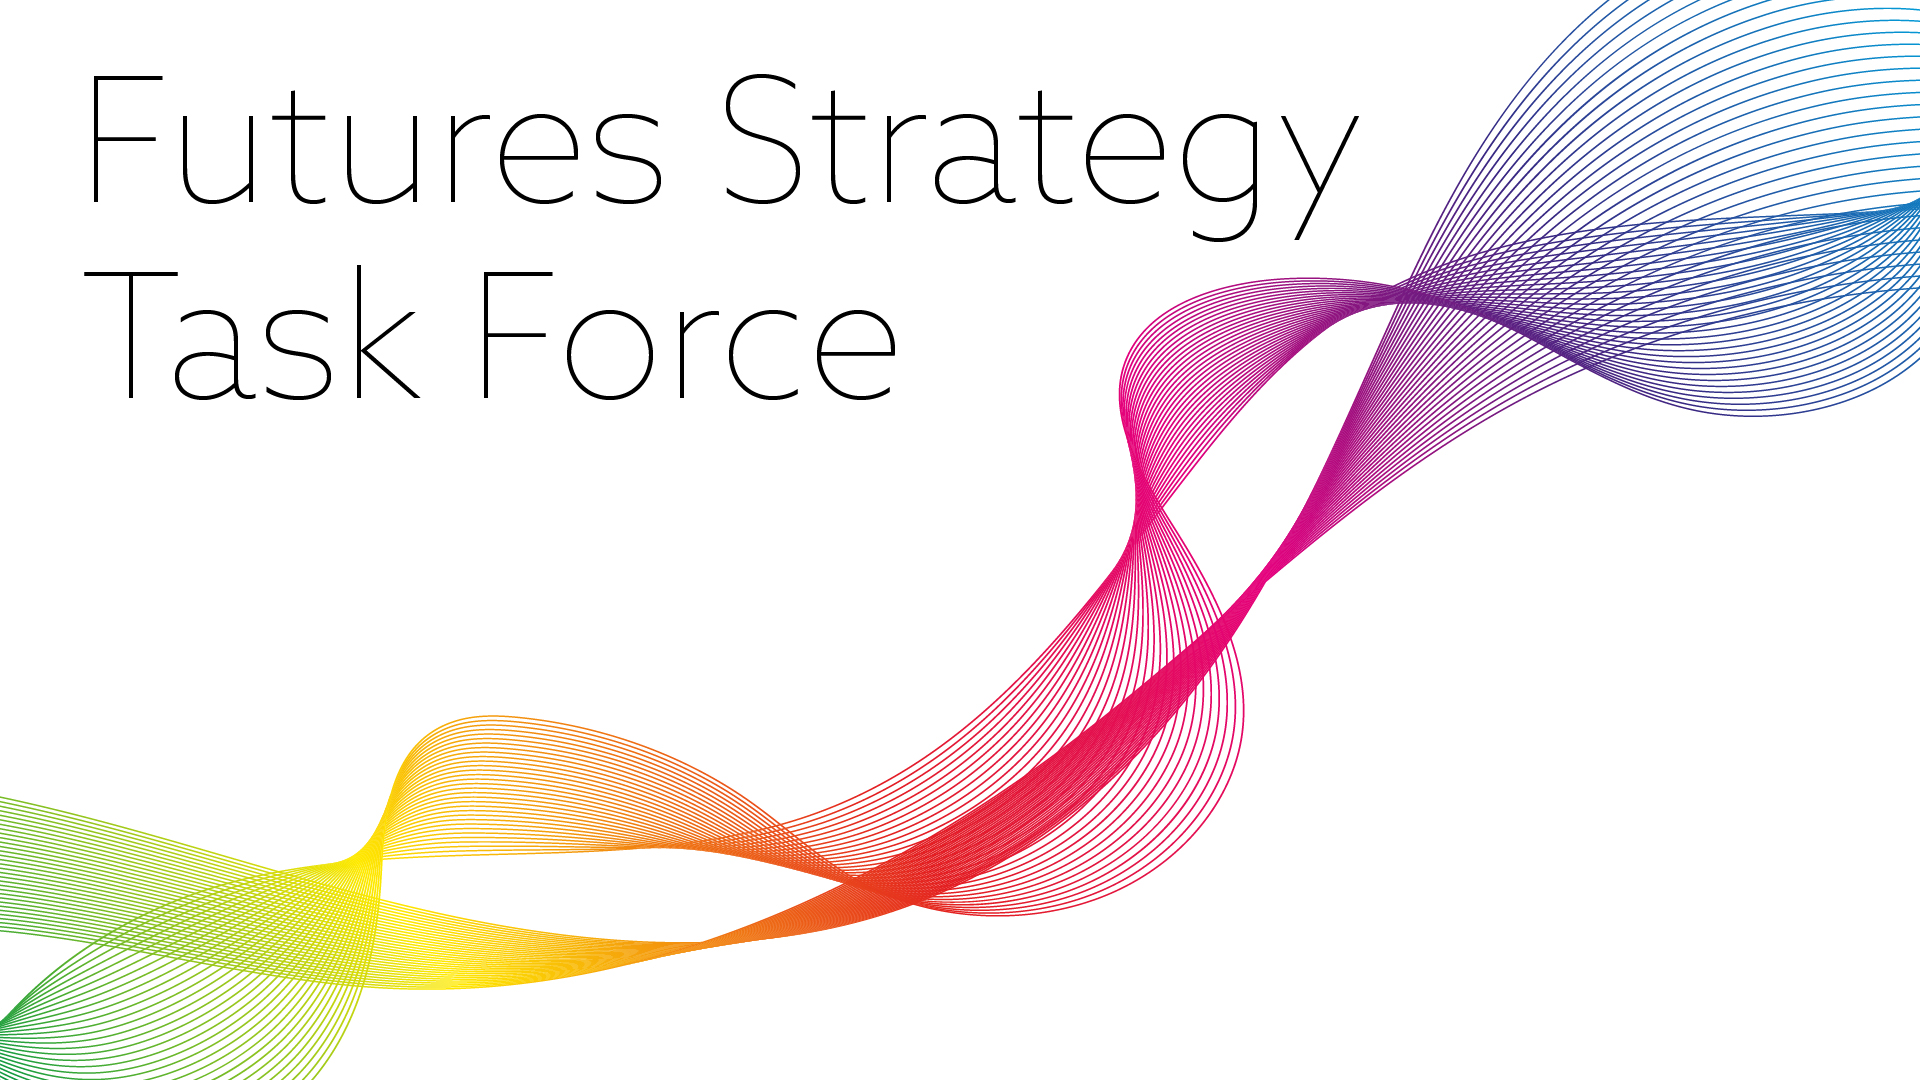 Futures Strategy task force